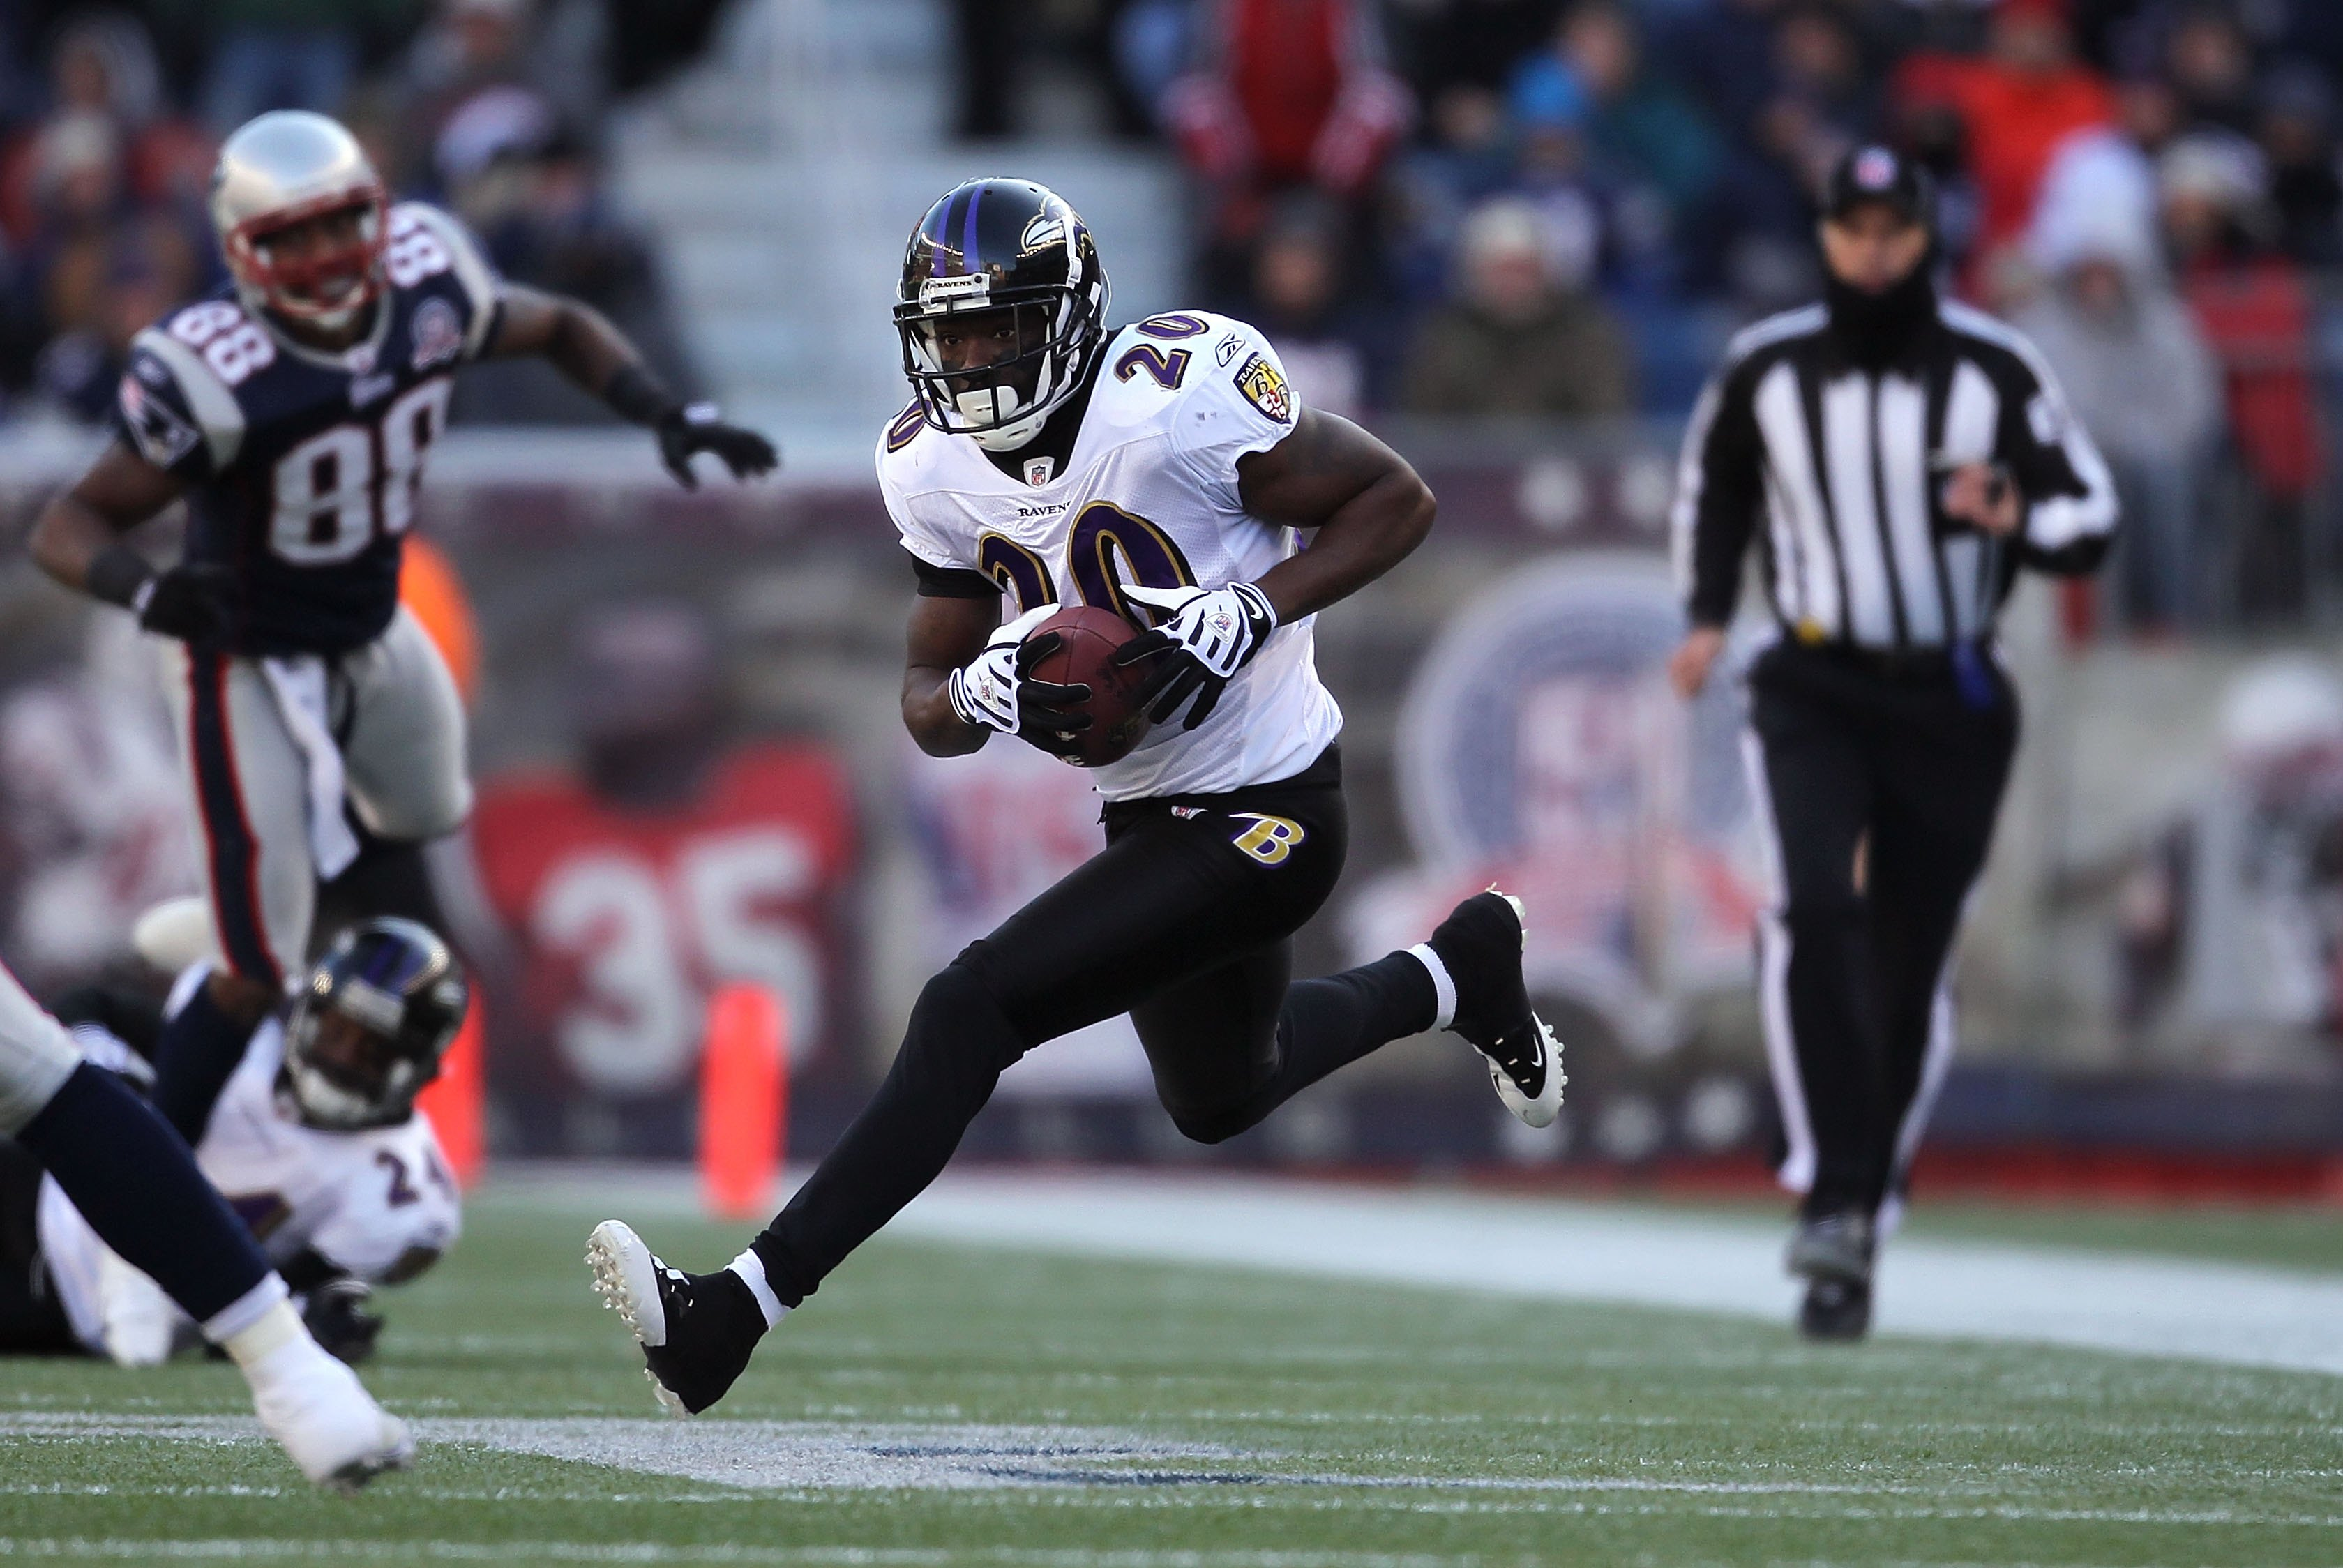 Ed Reed Returns An Interception For The Ravens